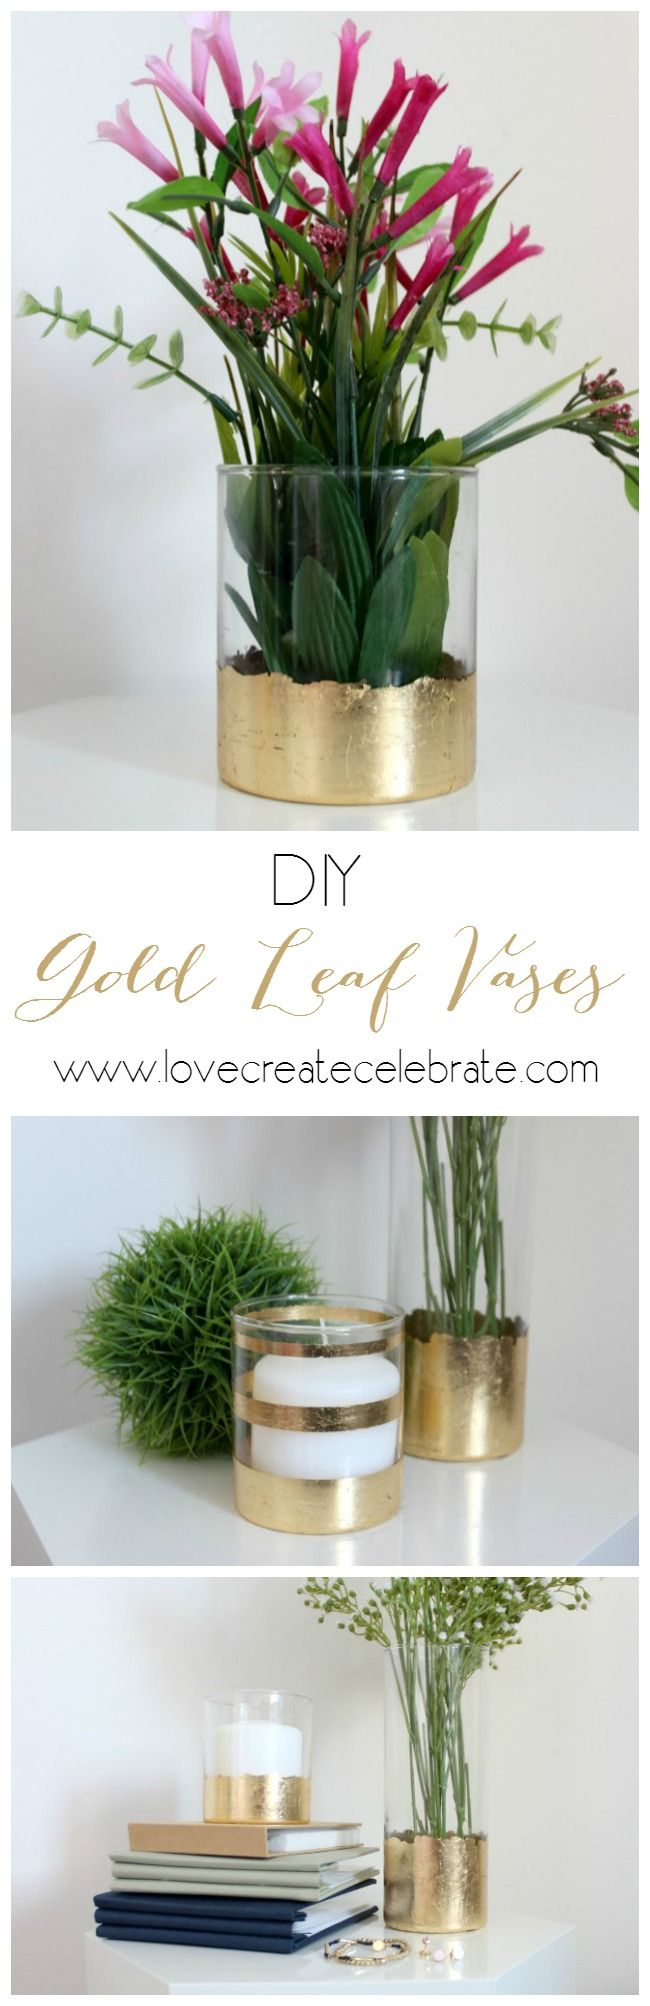 DIY Gold Leaf Vases - Great tutorial to dress up those old vases (or anything made of plastic or glass!). Beautiful modern home accent pieces!